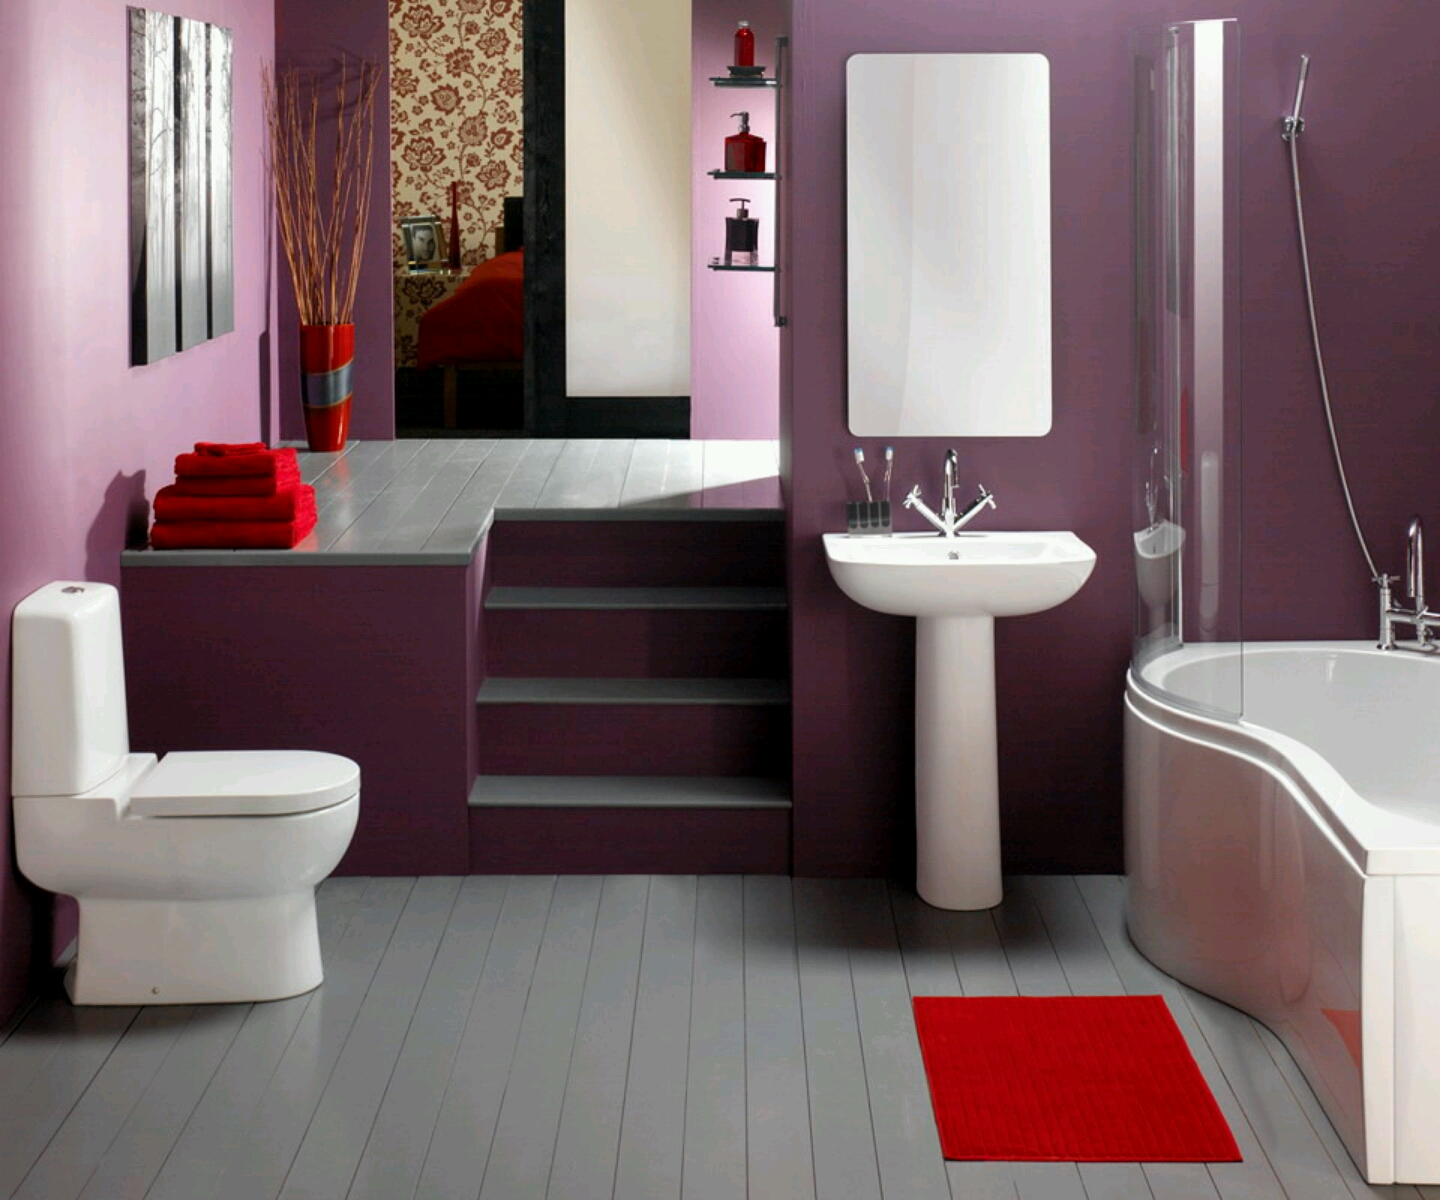 New home designs latest luxury modern bathrooms designs for Modern bathroom design ideas